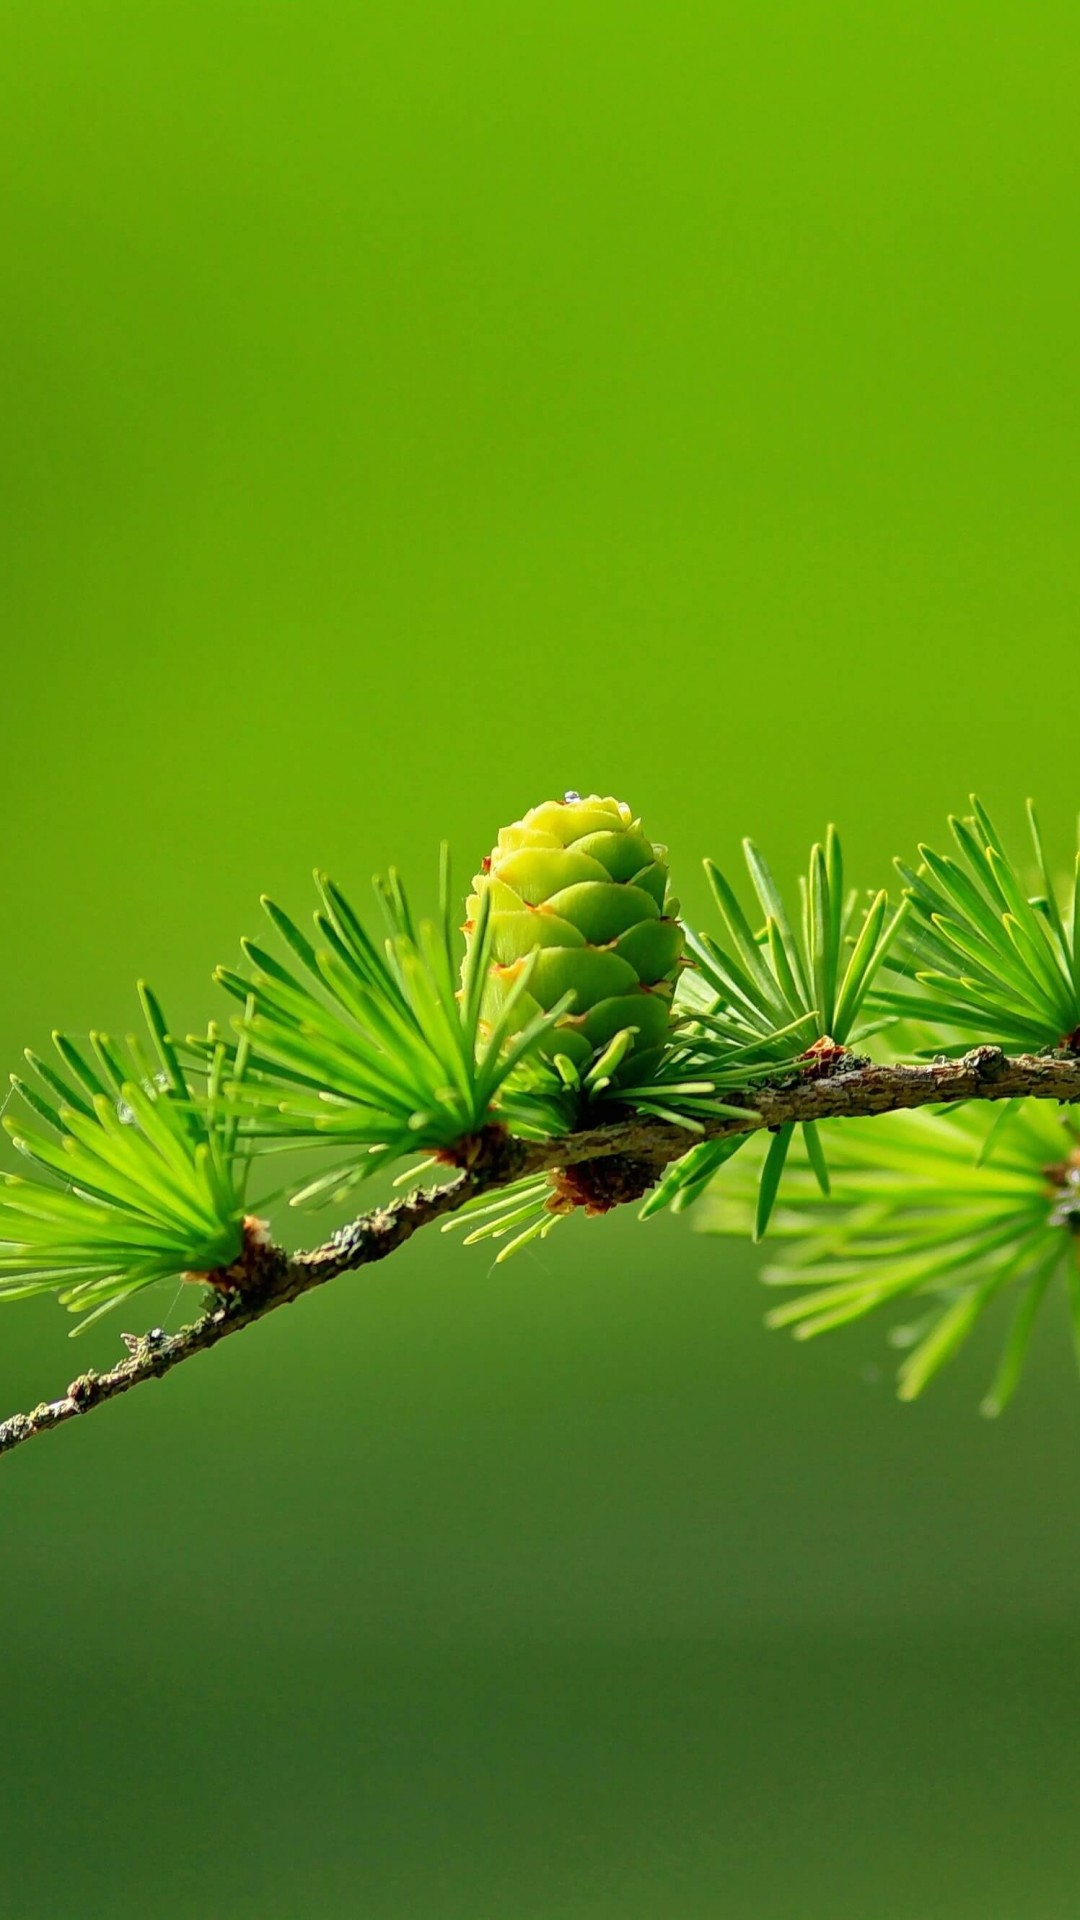 Branch of Pine Tree Wallpaper for SAMSUNG Galaxy S5